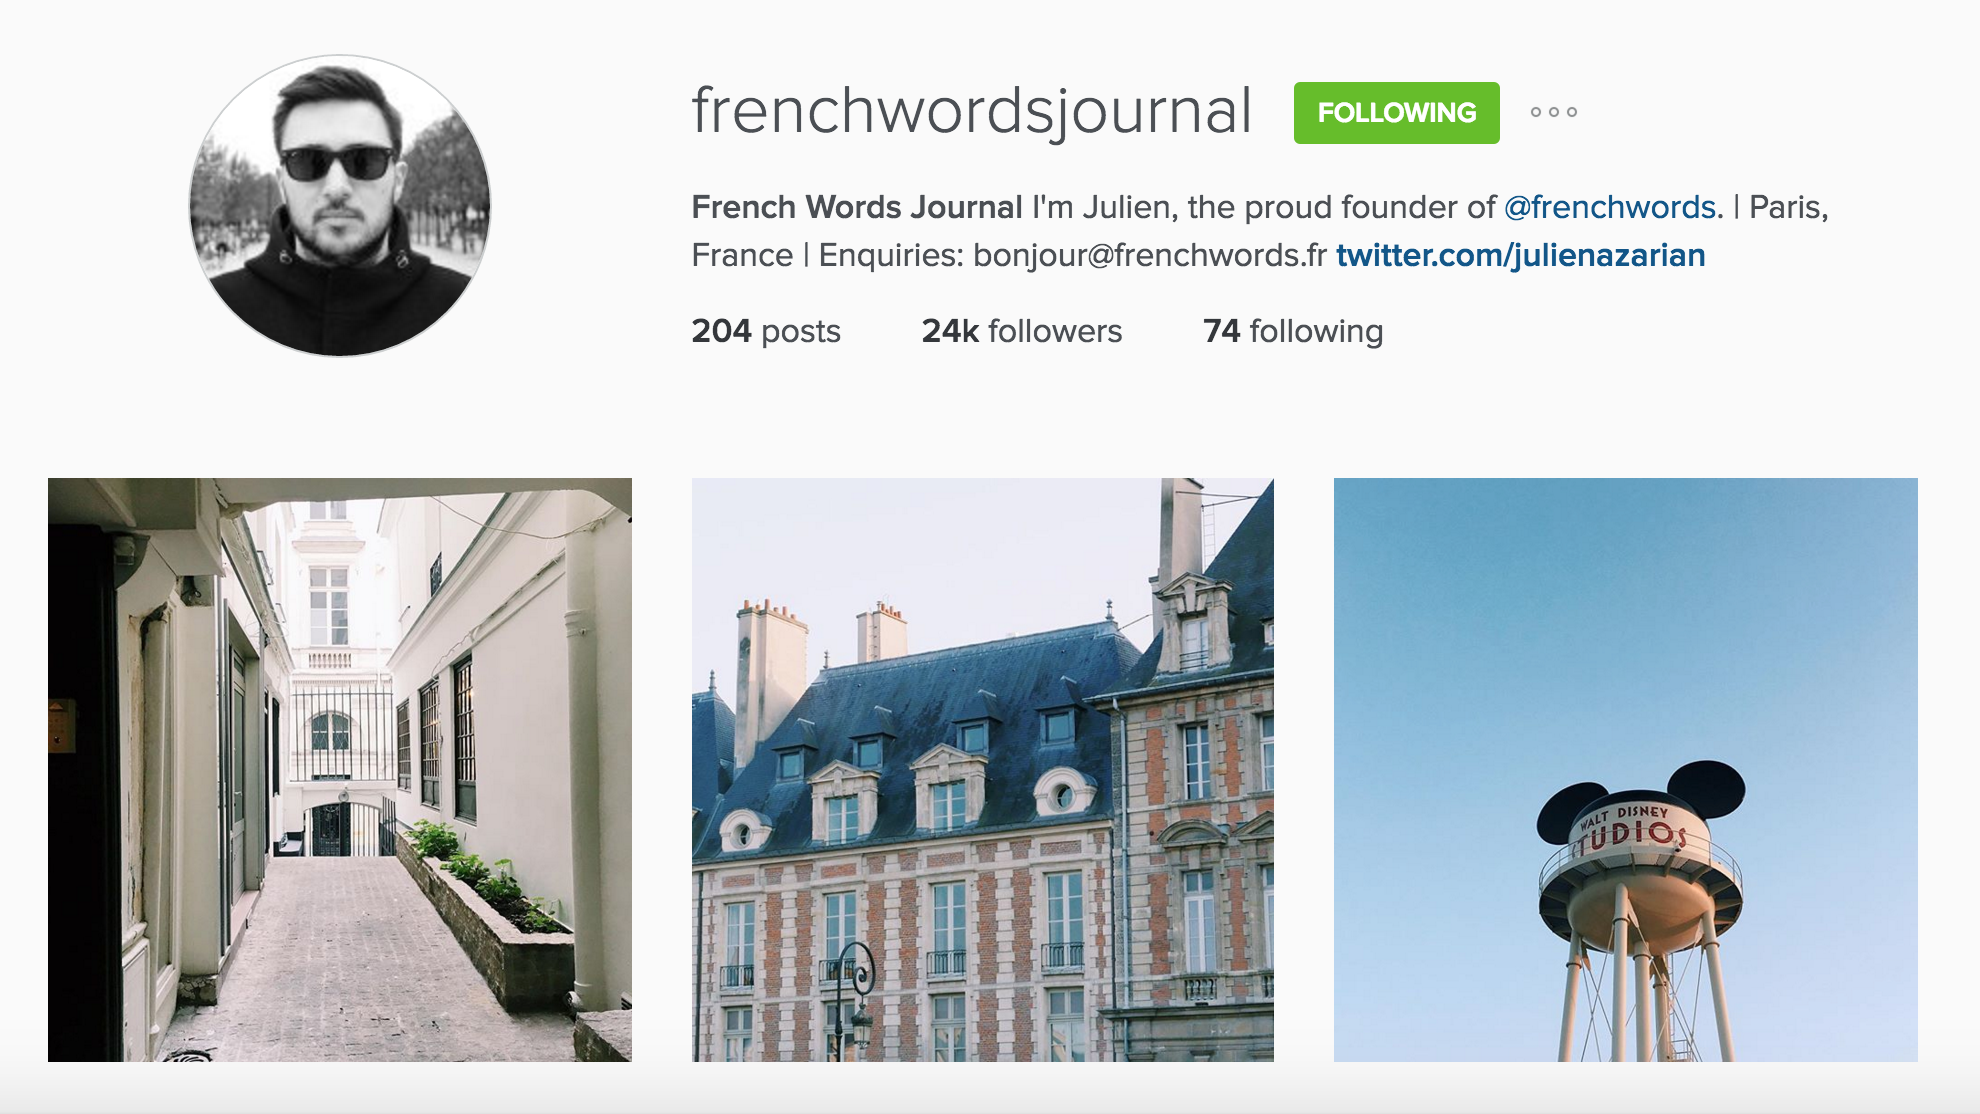 instagram cariboo paris account french words journal julien